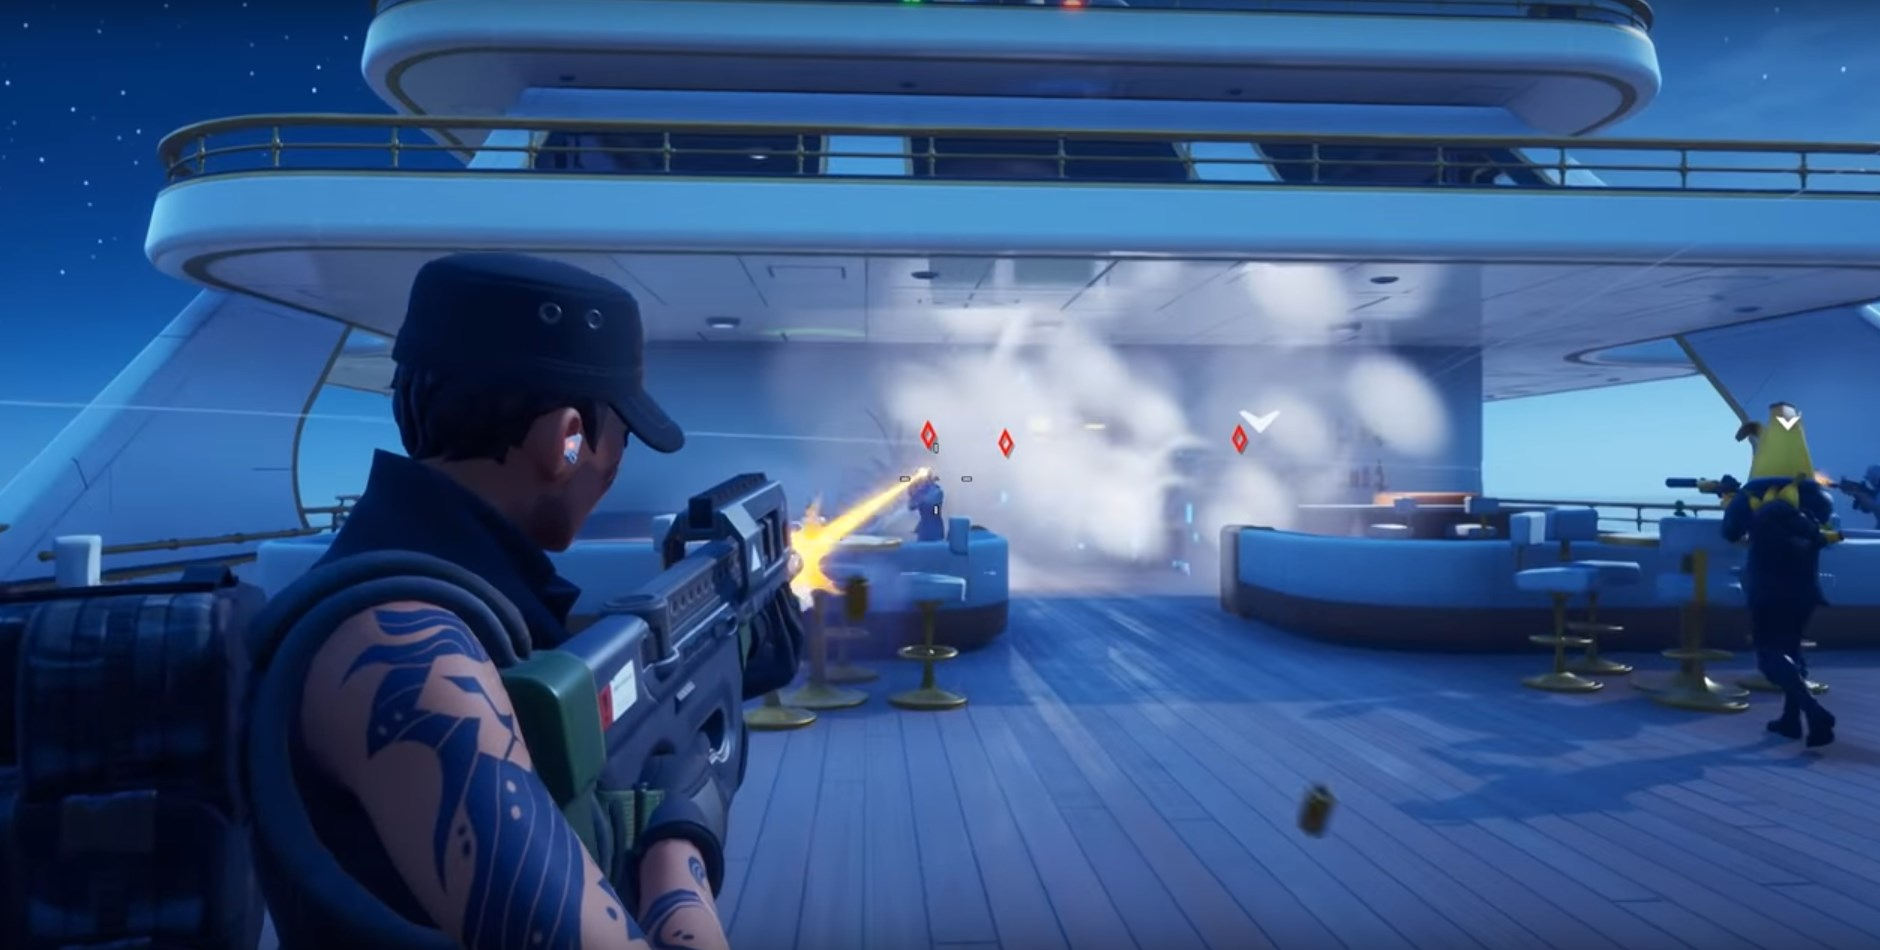 Fortnite player shooting enemies marked by the Shakedown.